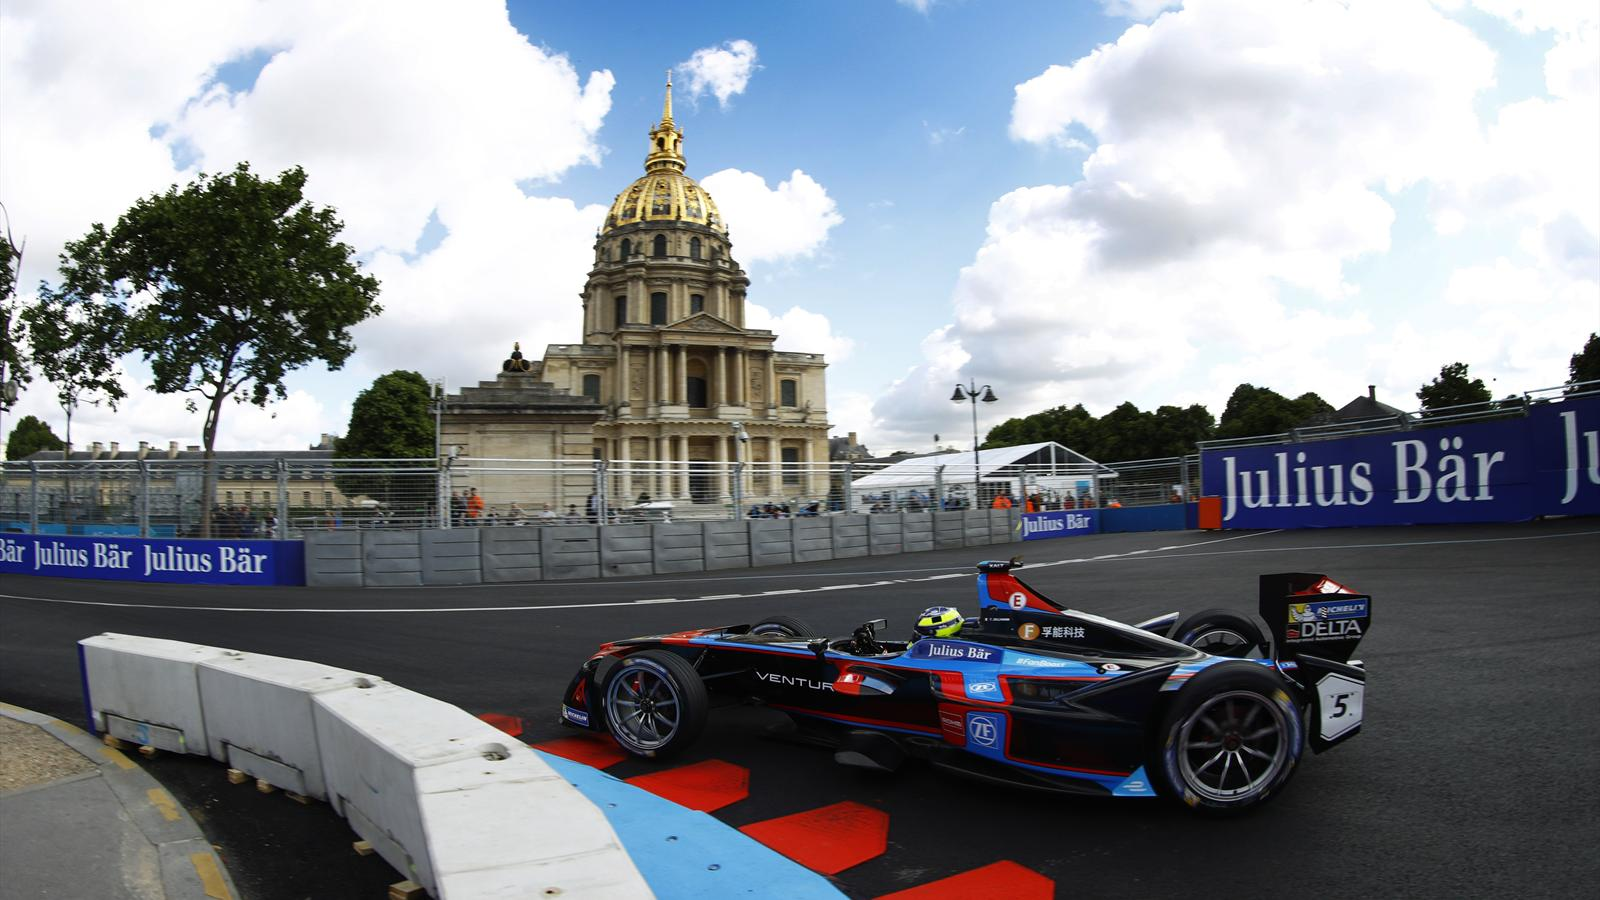 video e prix de paris un circuit dans le cadre unique des invalides eprix de paris video. Black Bedroom Furniture Sets. Home Design Ideas